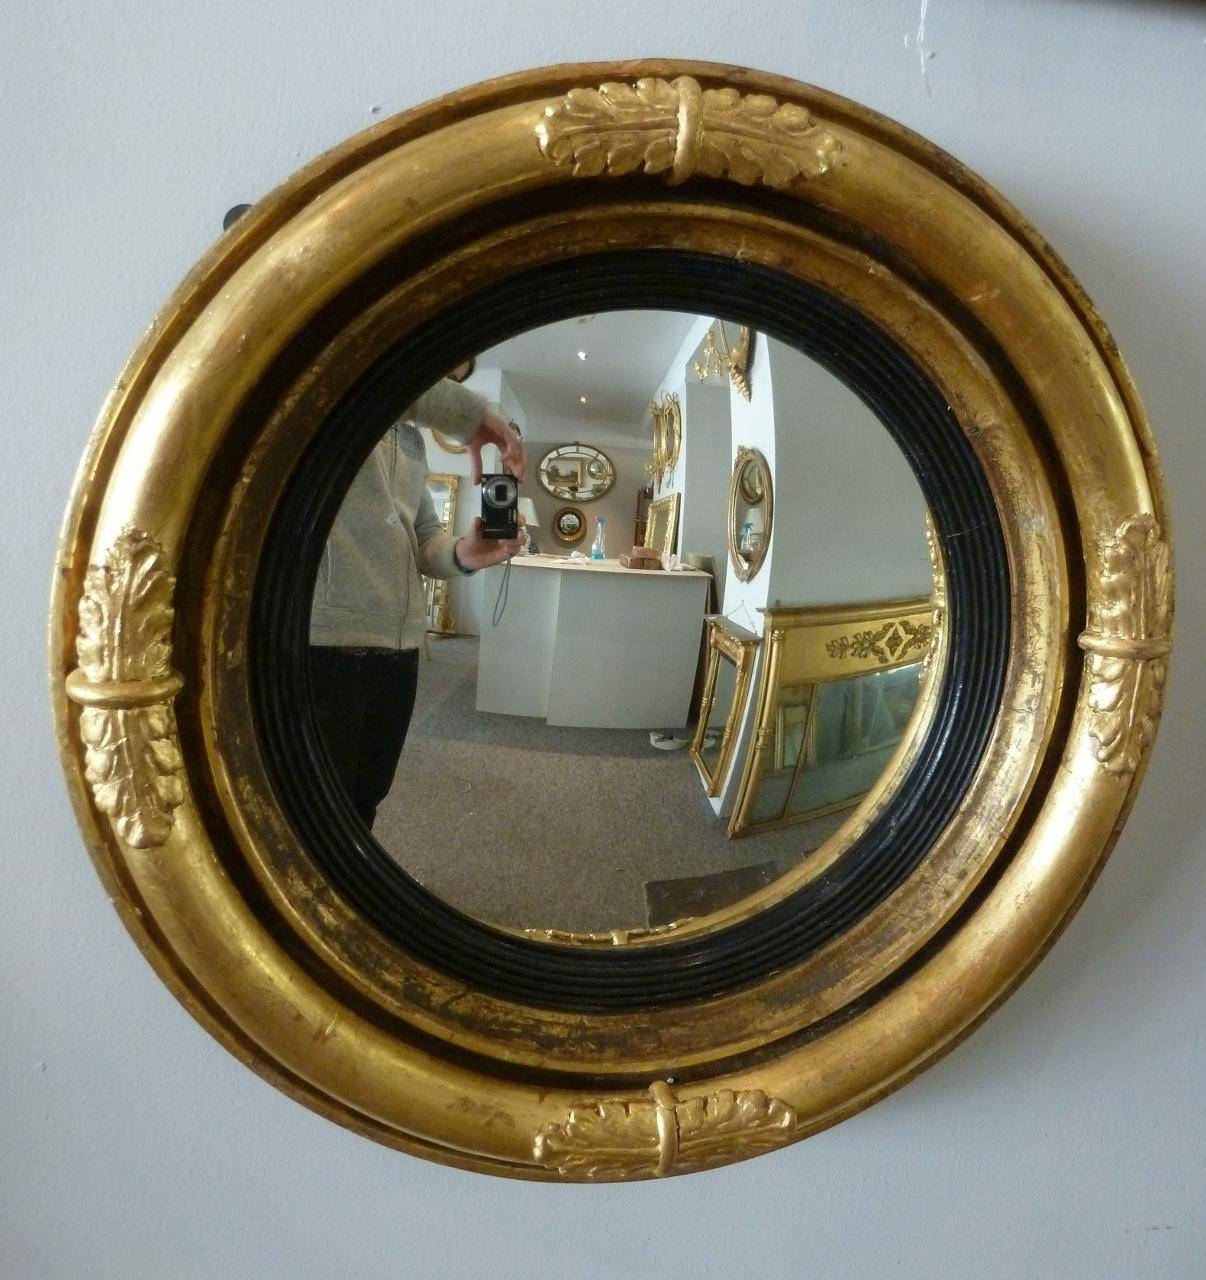 Small Regency Convex Mirror From Annabelles Gilt Shop Regarding Small Convex Mirrors (View 23 of 25)